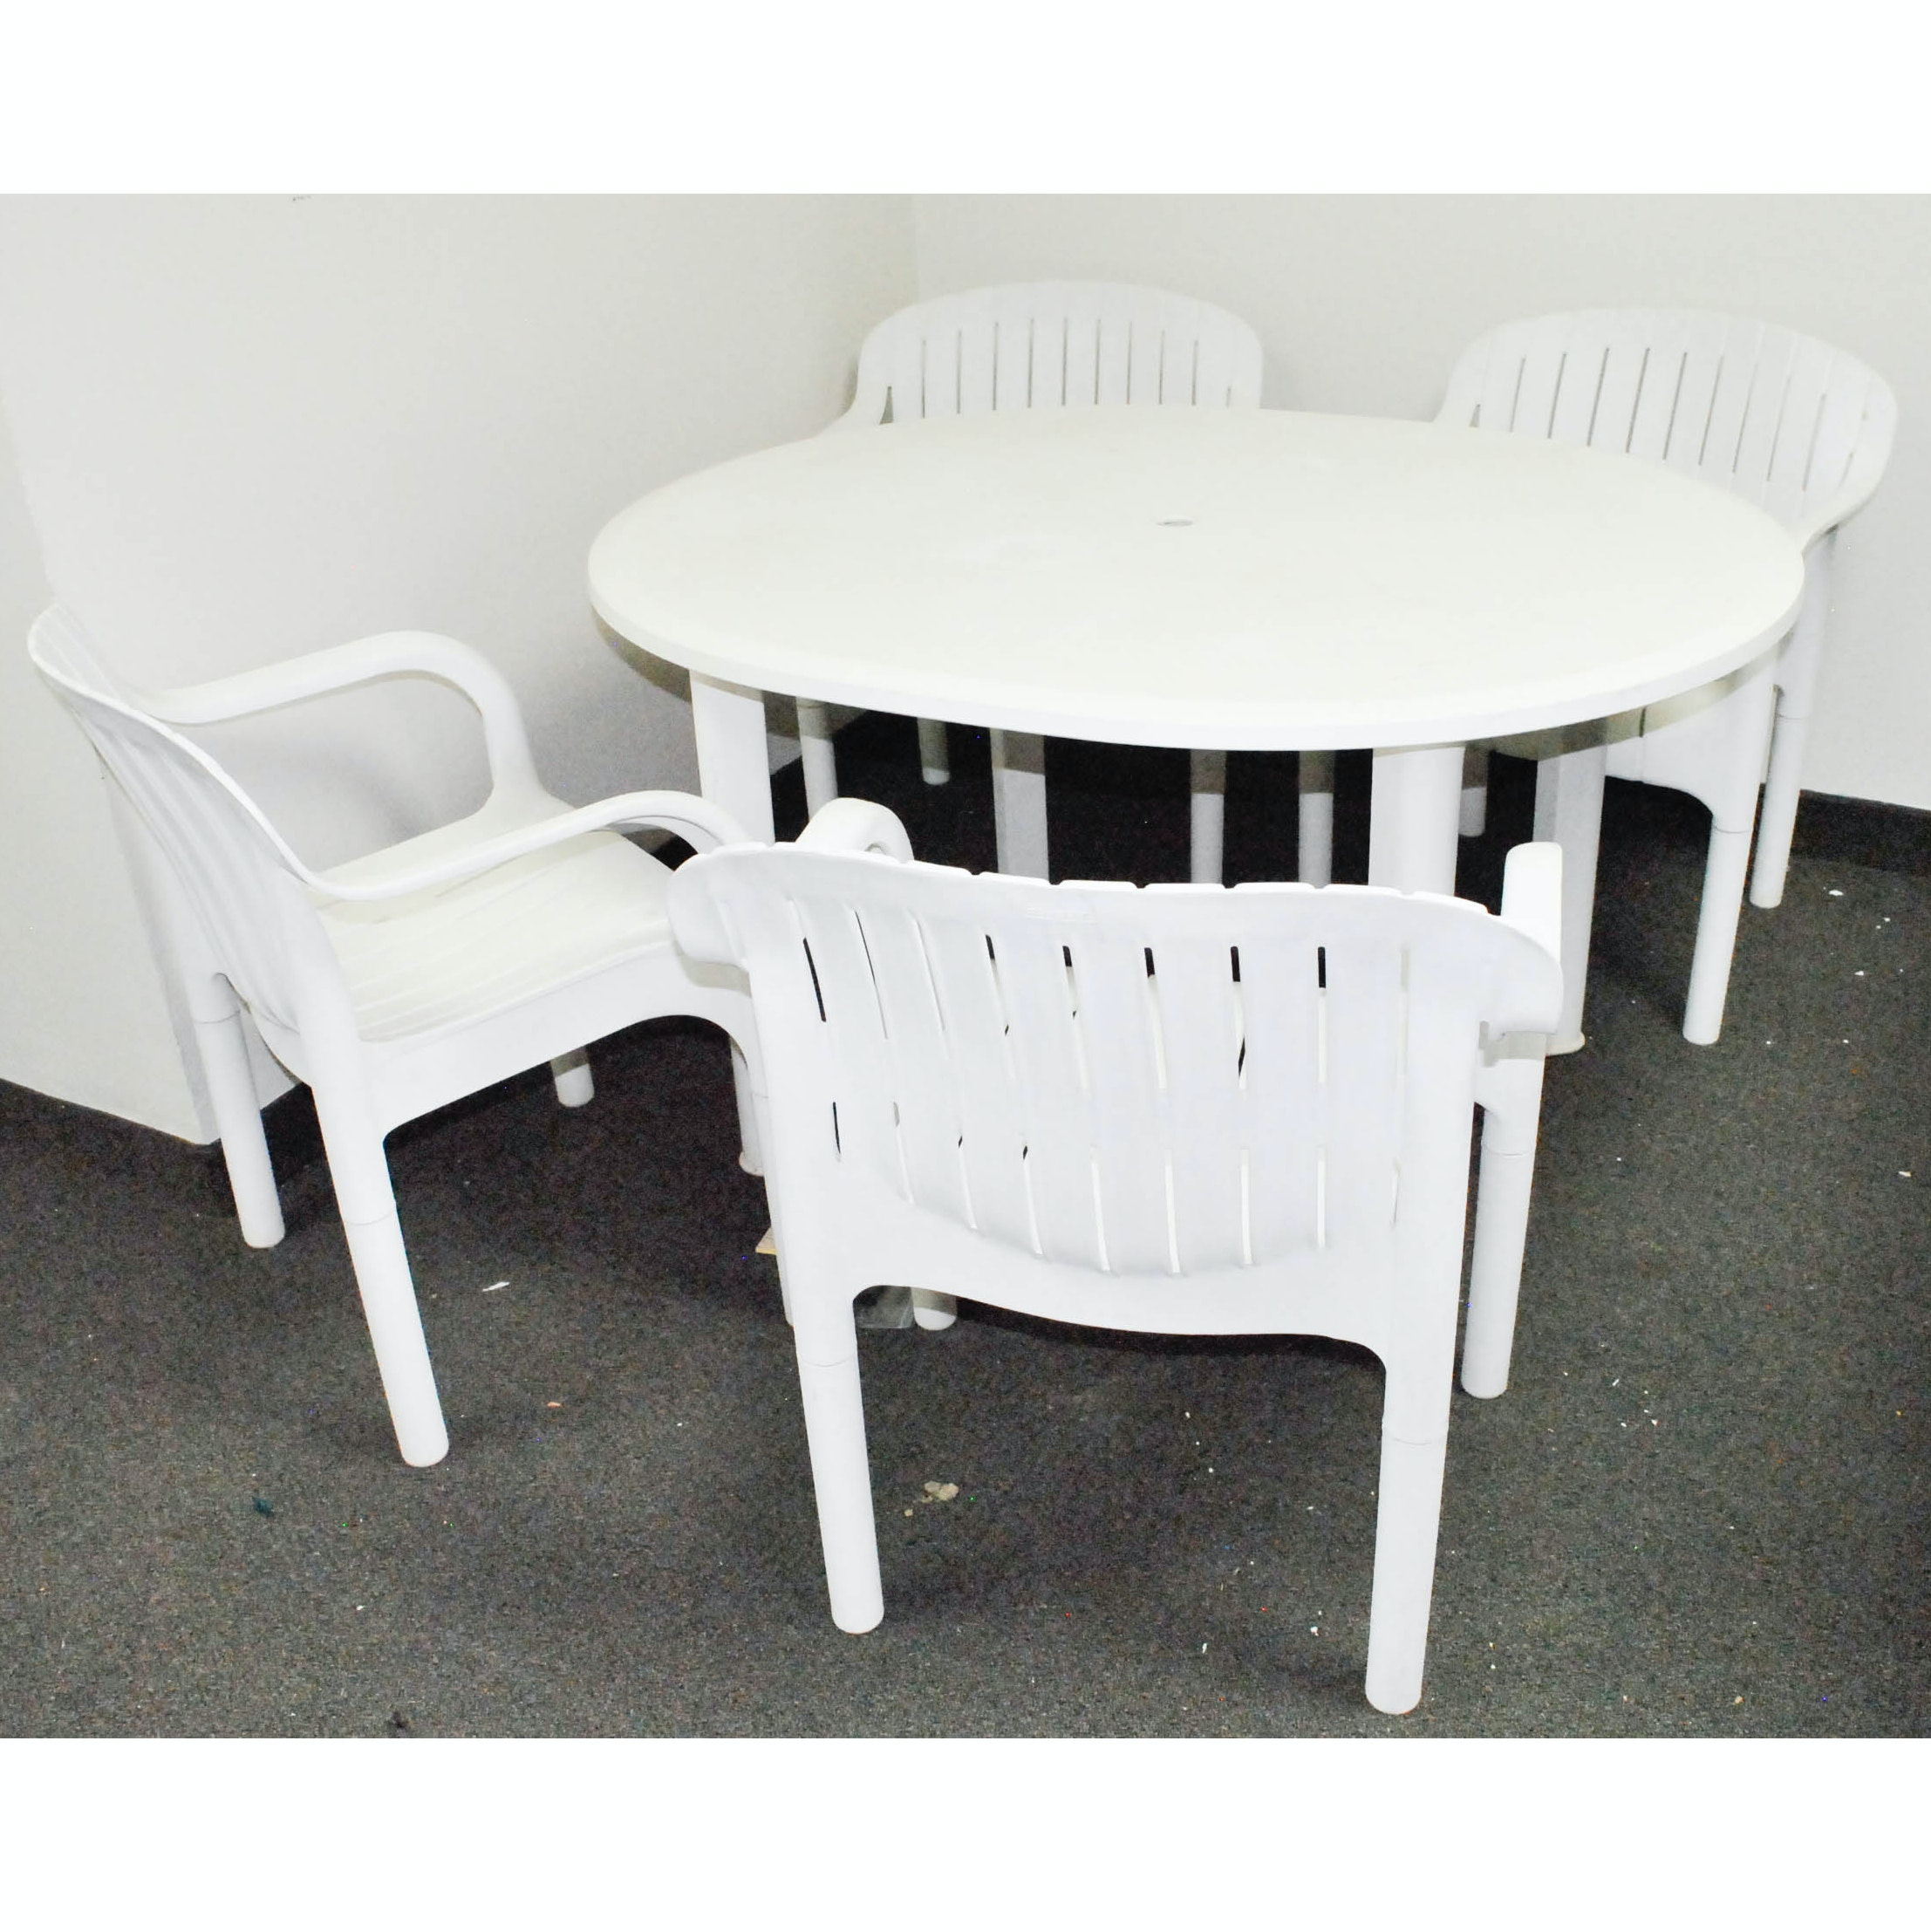 Allibert Patio Table and Chairs